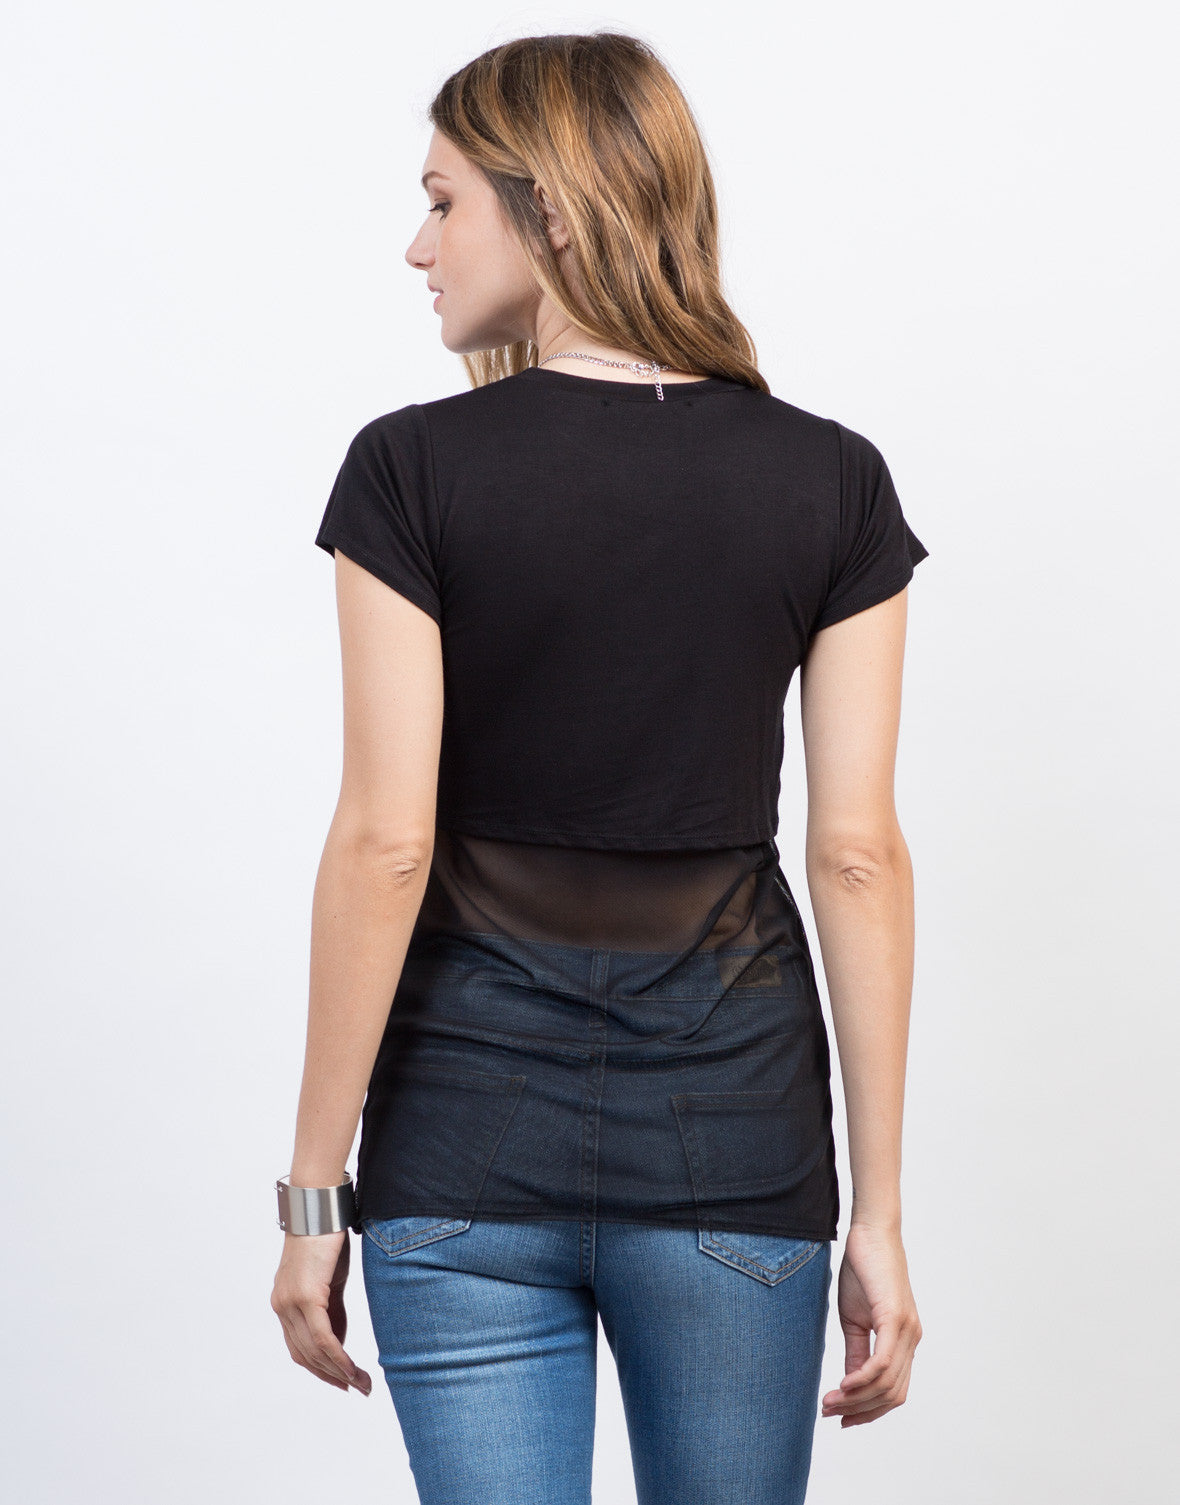 Back View of Peekaboo Mesh Top